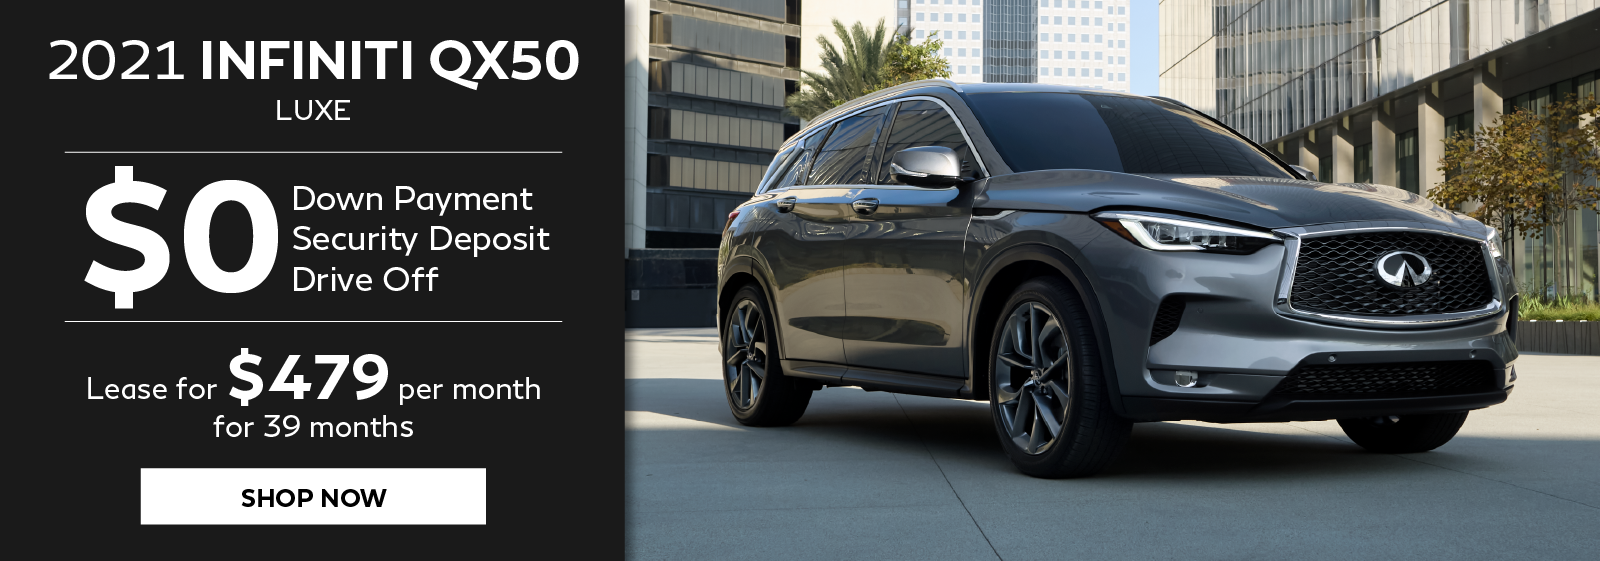 2021 INFINITI QX50 Zero down leases. Click to shop now.